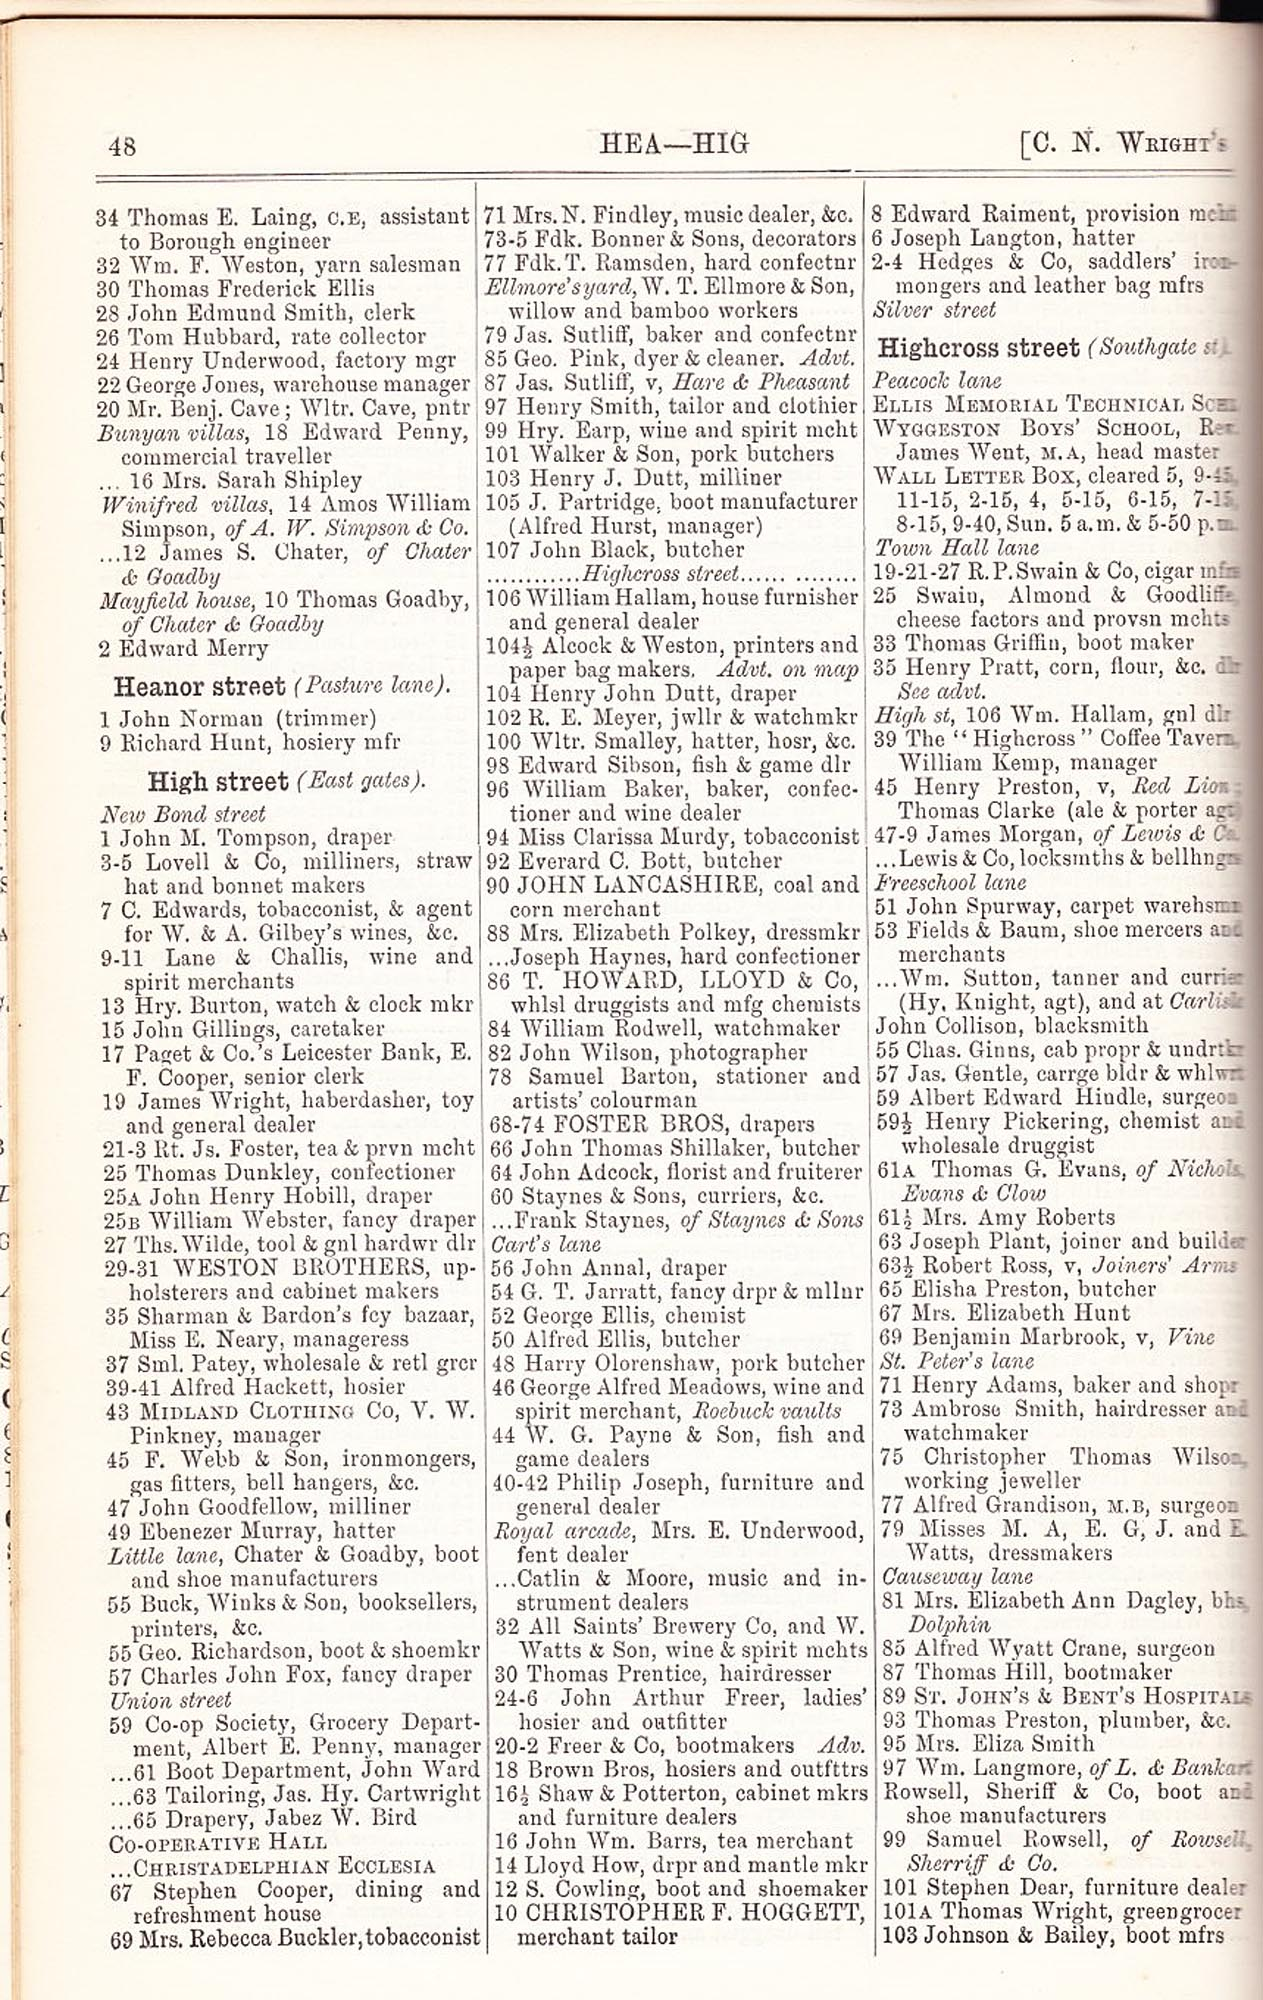 Wrights Directory listing businesses on High Street in 1892 -